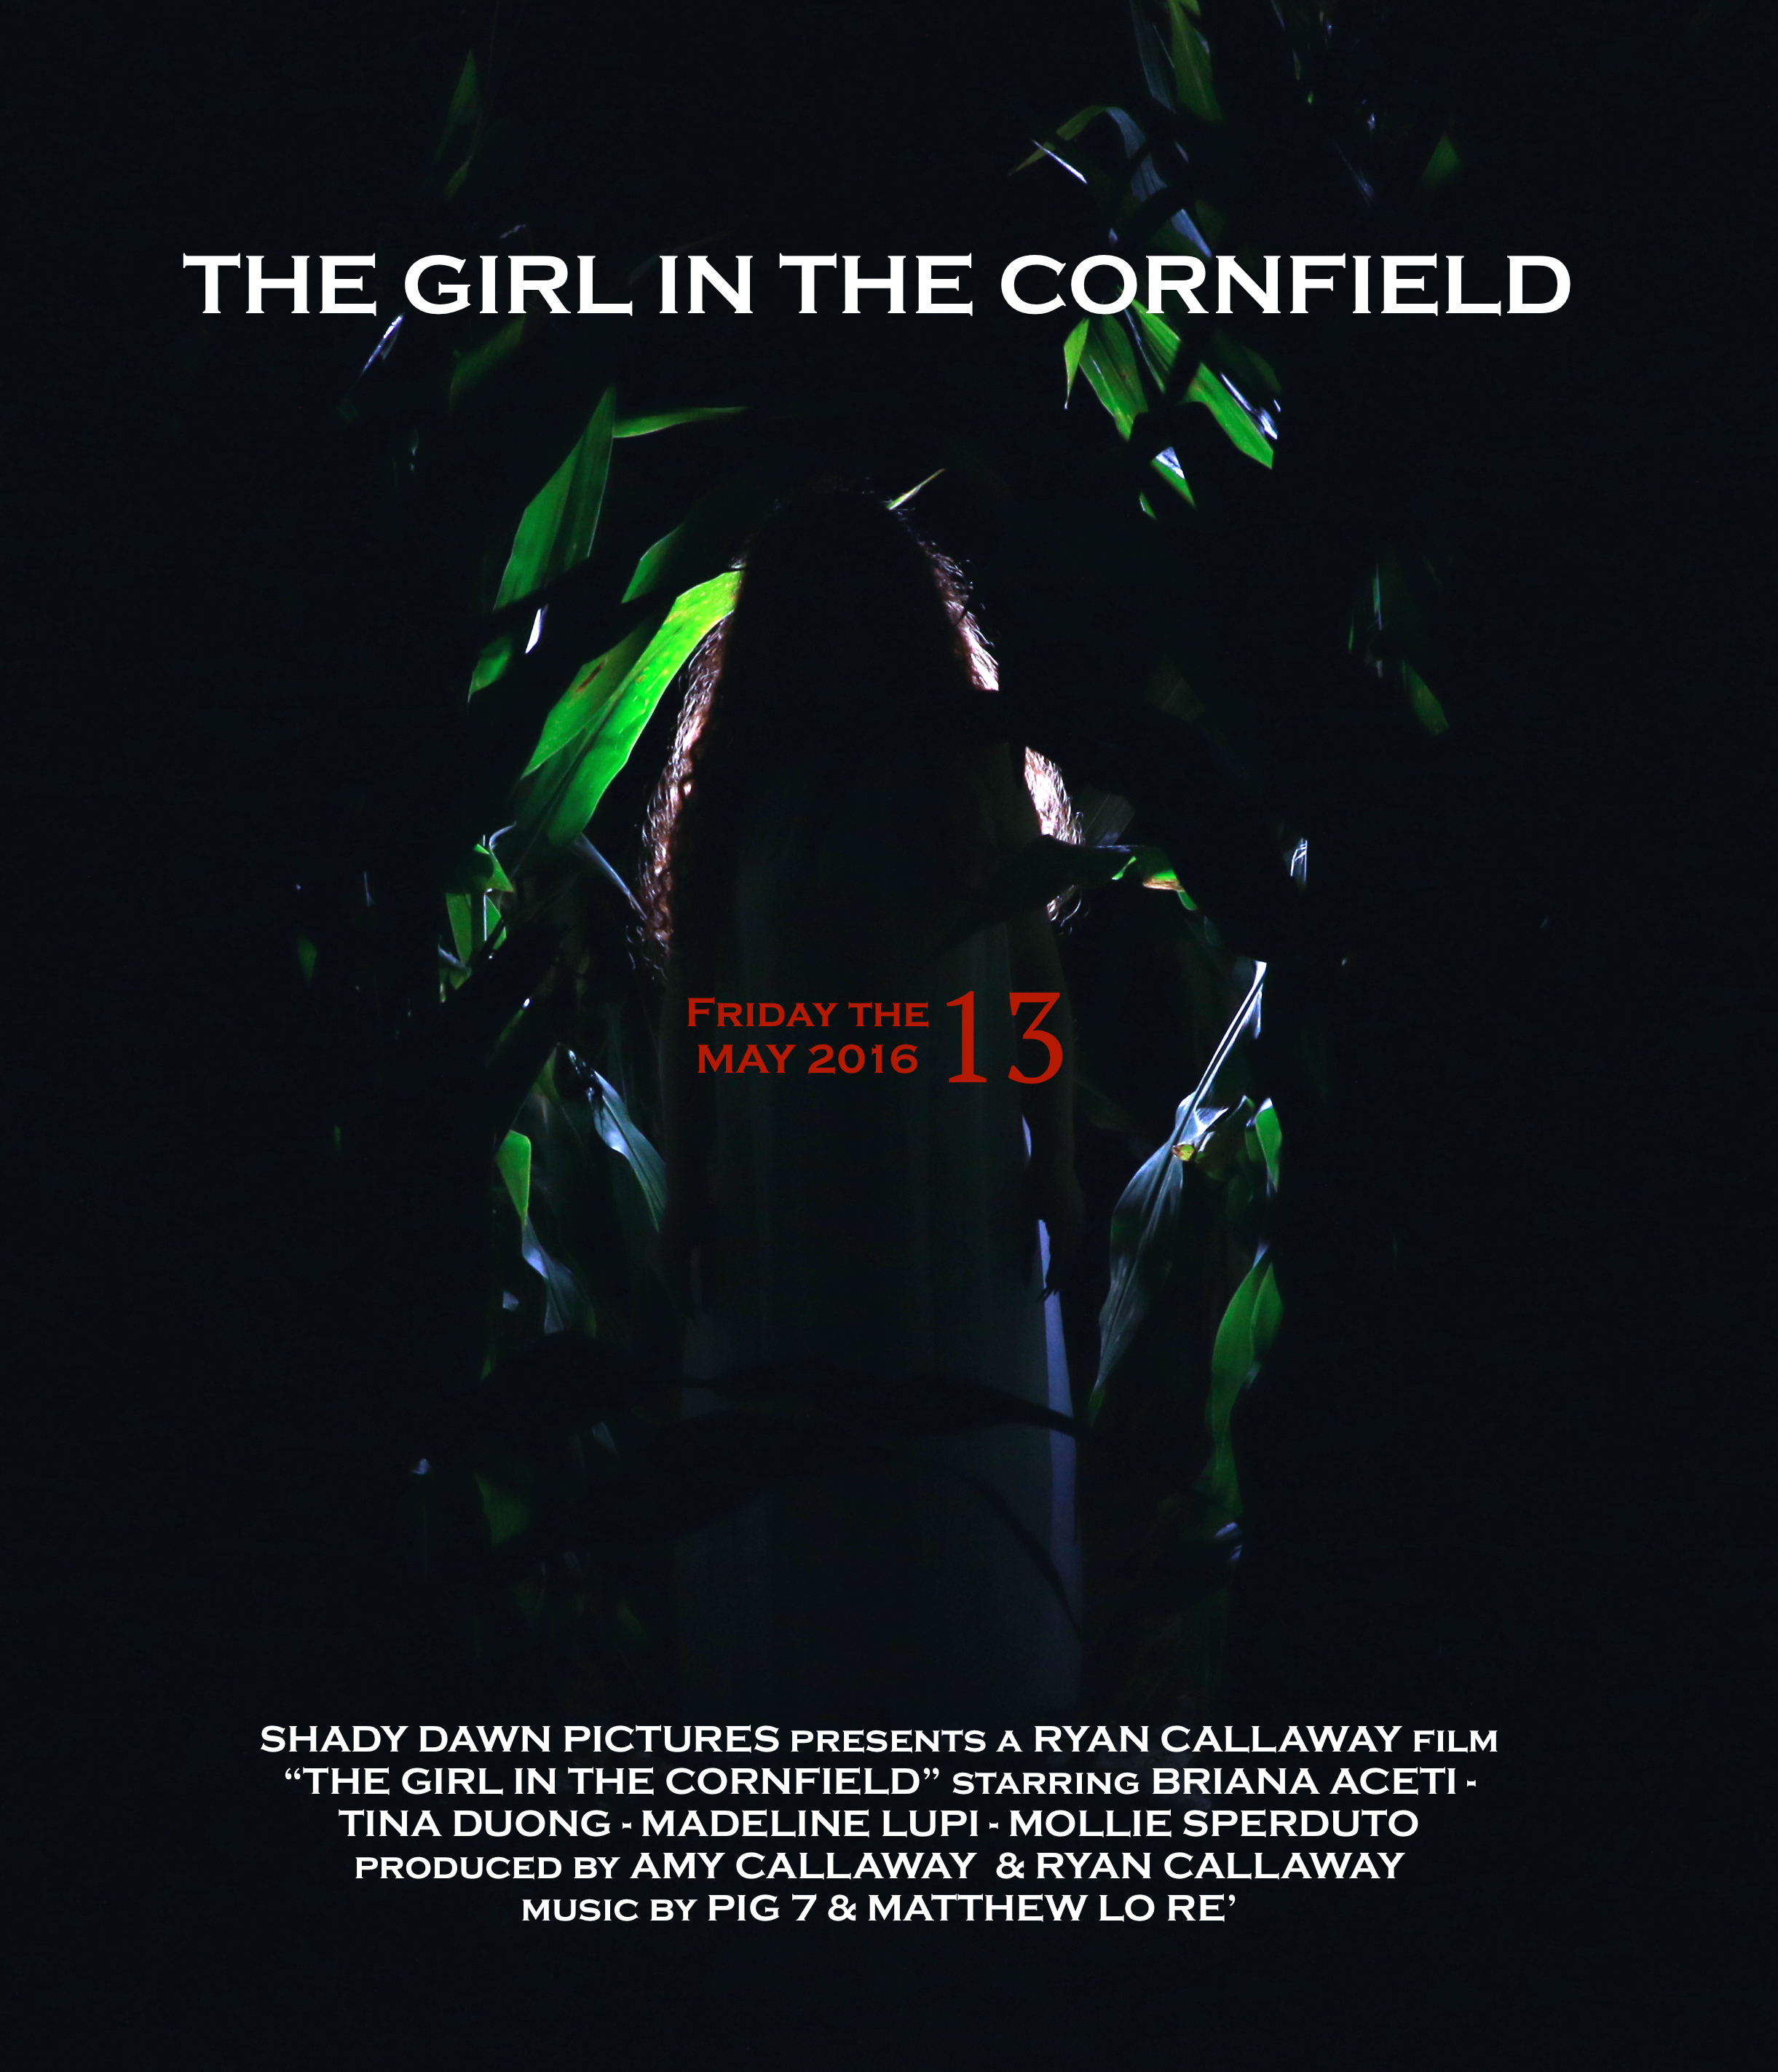 image The Girl in the Cornfield Watch Full Movie Free Online